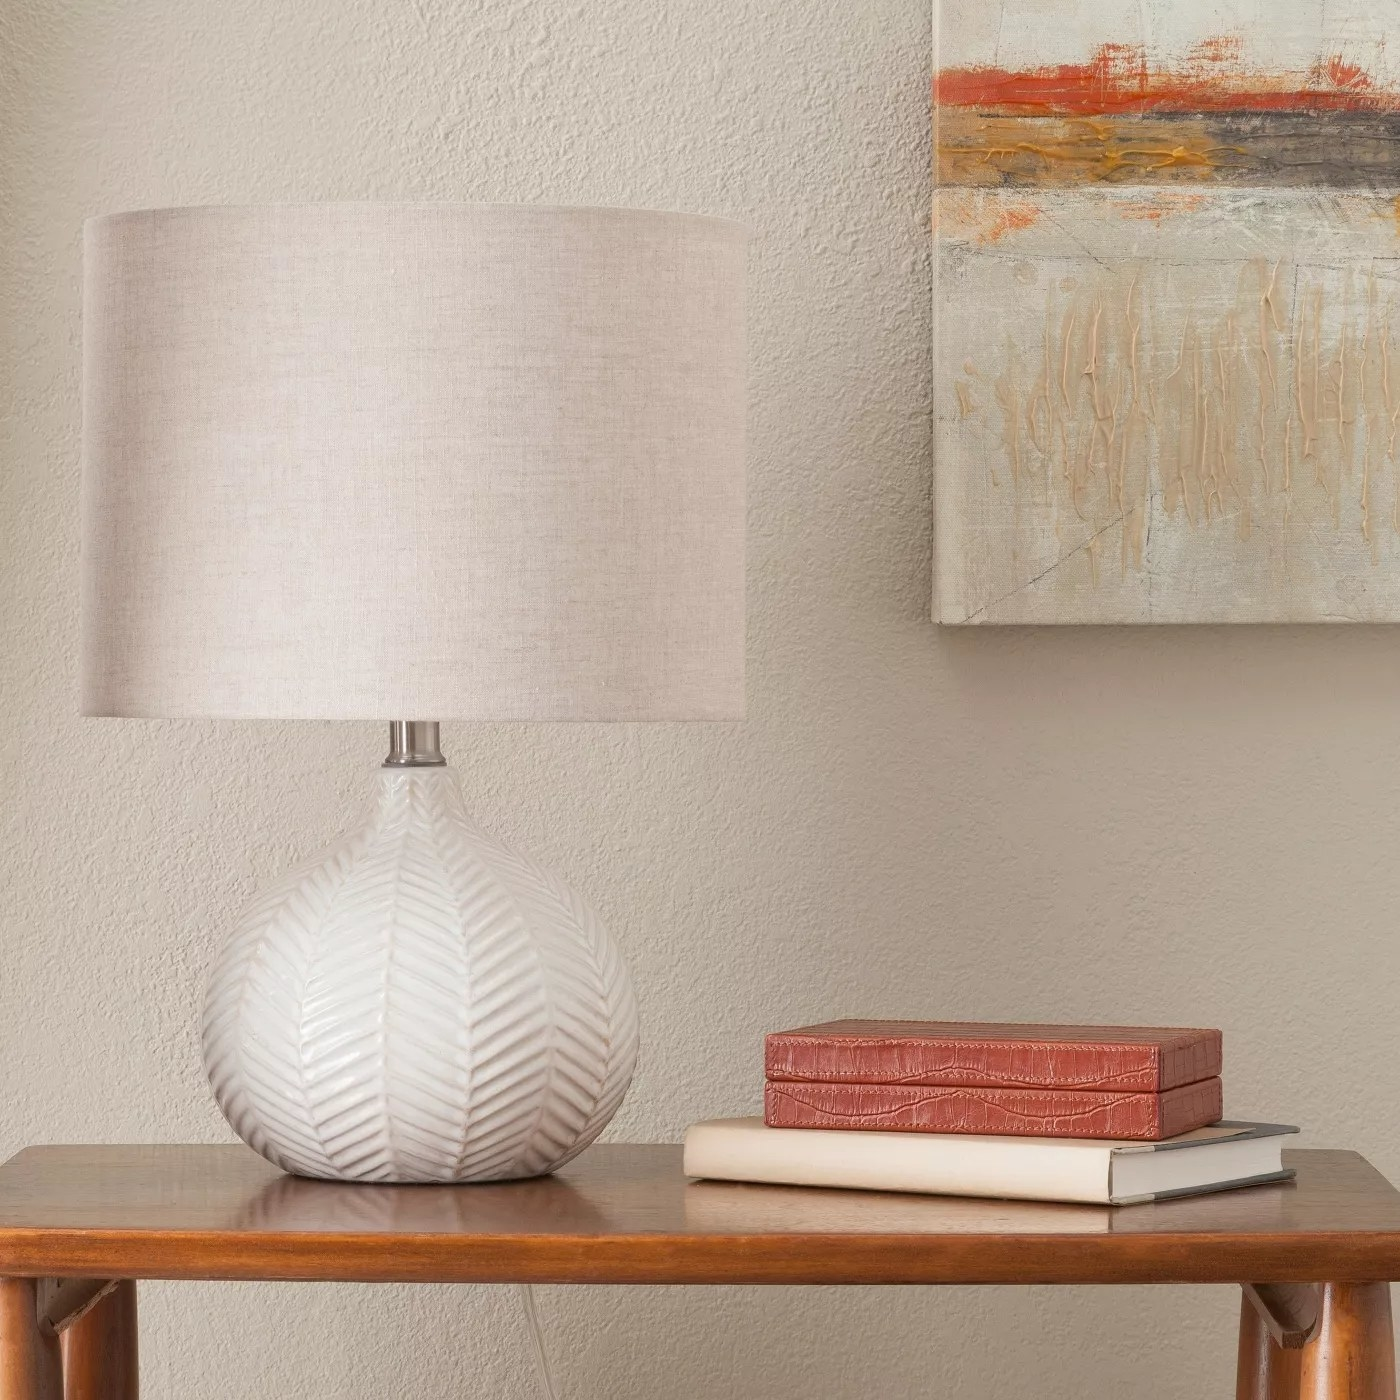 The lamp on an entryway table